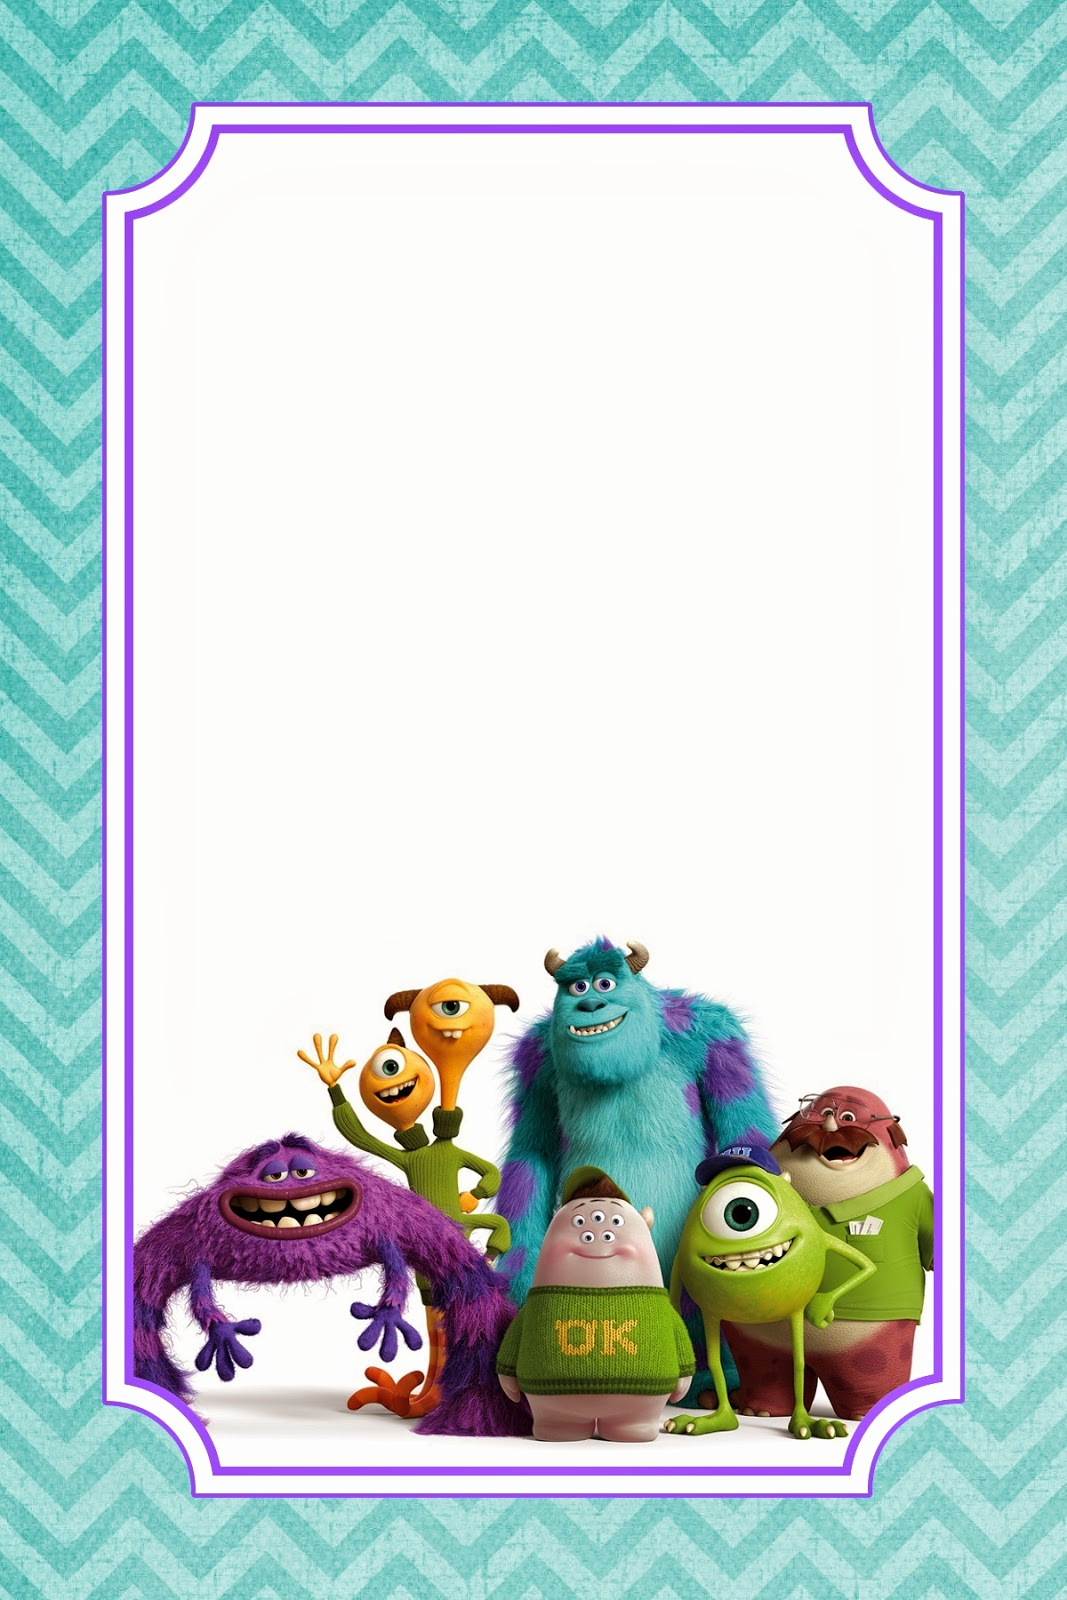 Free Monsters Inc Invitation Template Beautiful Appetizer for A Crafty Mind Free Monsters University Food